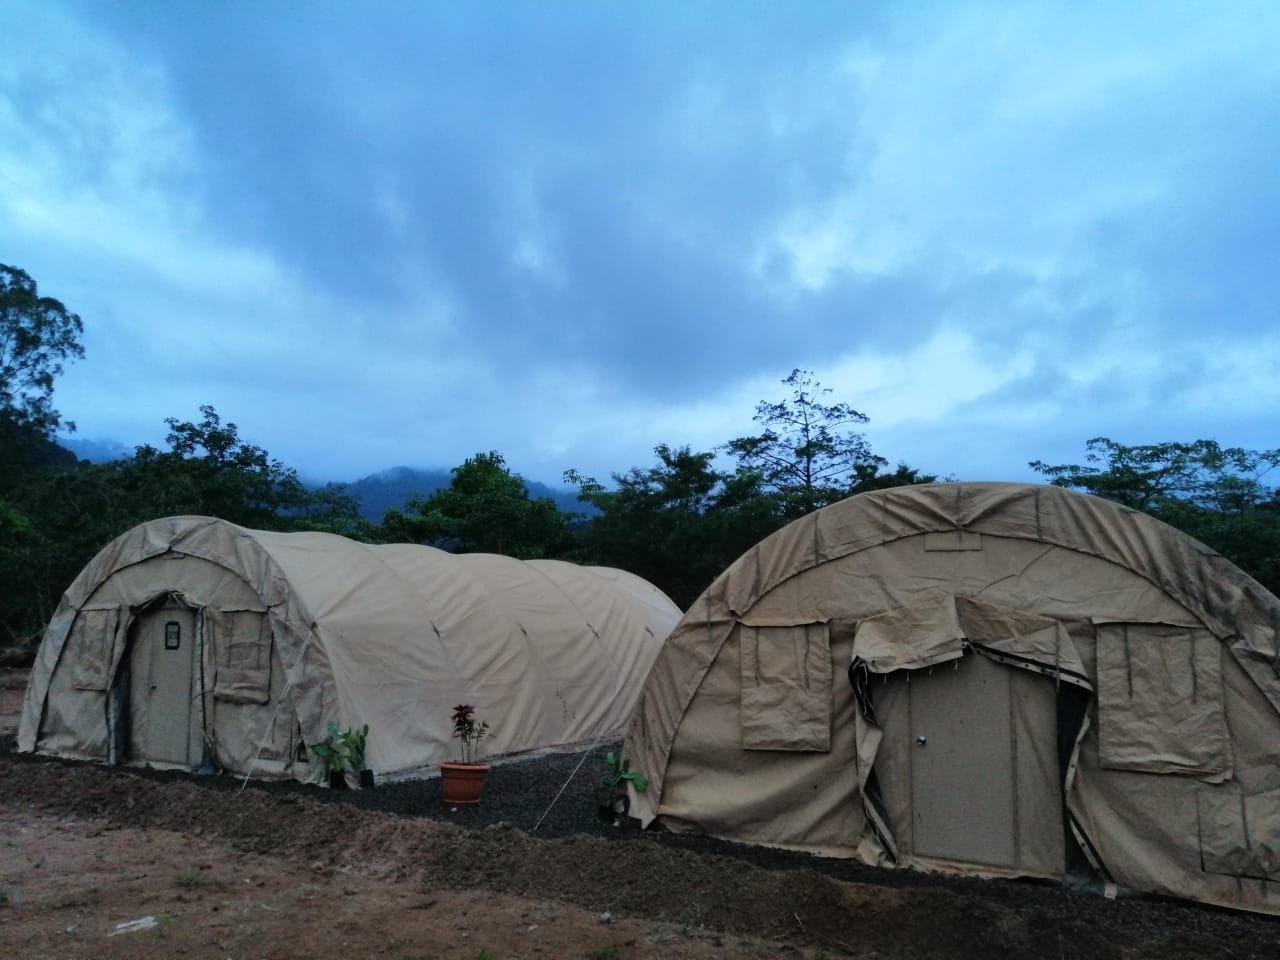 Guatemalan Migrant Shelter, Casa del Migrante Jose, Offers a Meal, a Bed, Prayers, and Humanitarian Support